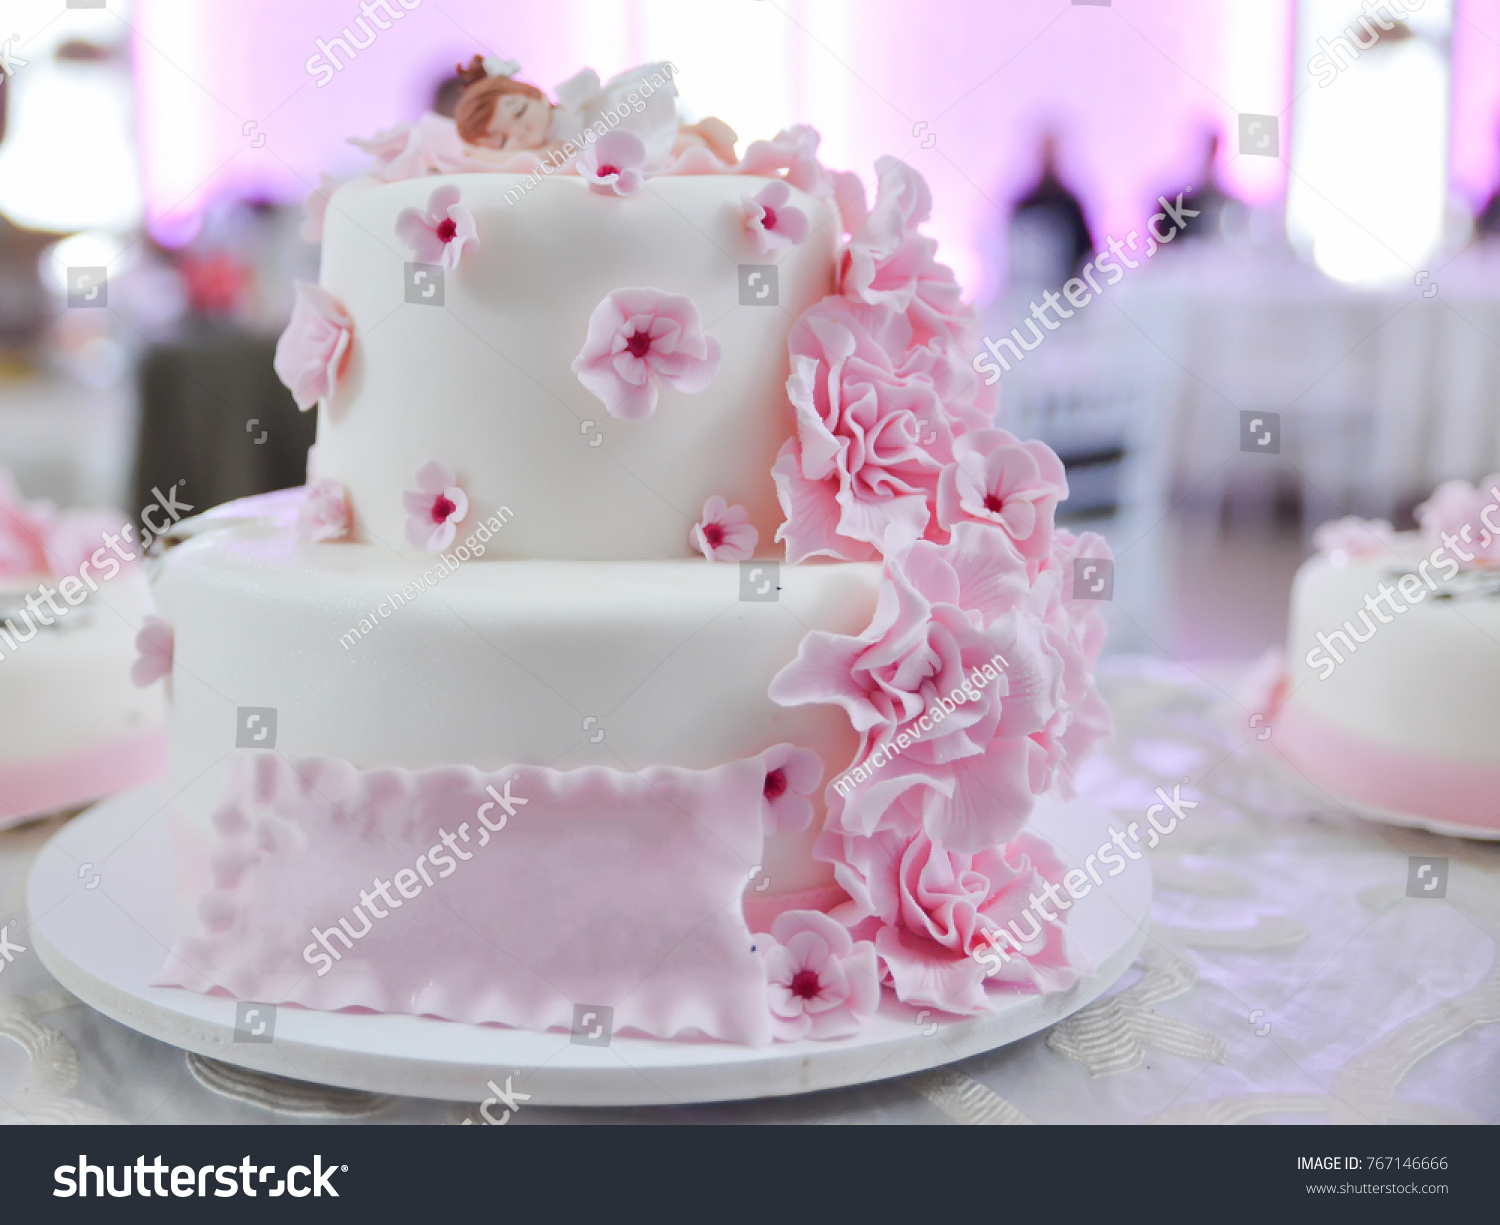 Child Birthday White Cake With Pink Floral Design And Girl Figurine On Top